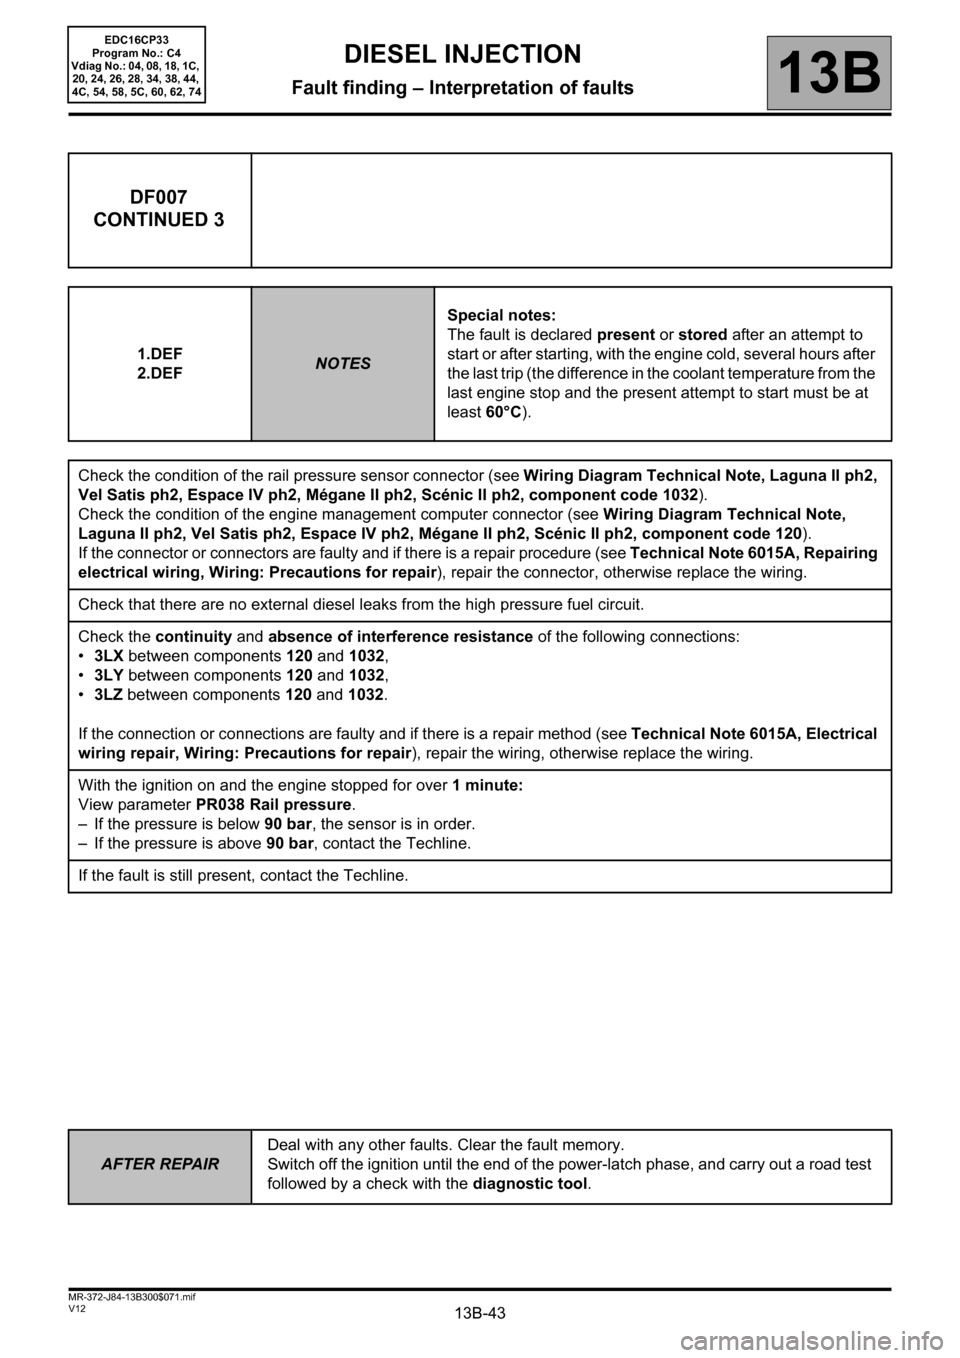 RENAULT SCENIC 2012 J95 / 3.G Engine And Peripherals EDC16CP33 Workshop Manual, Page 43